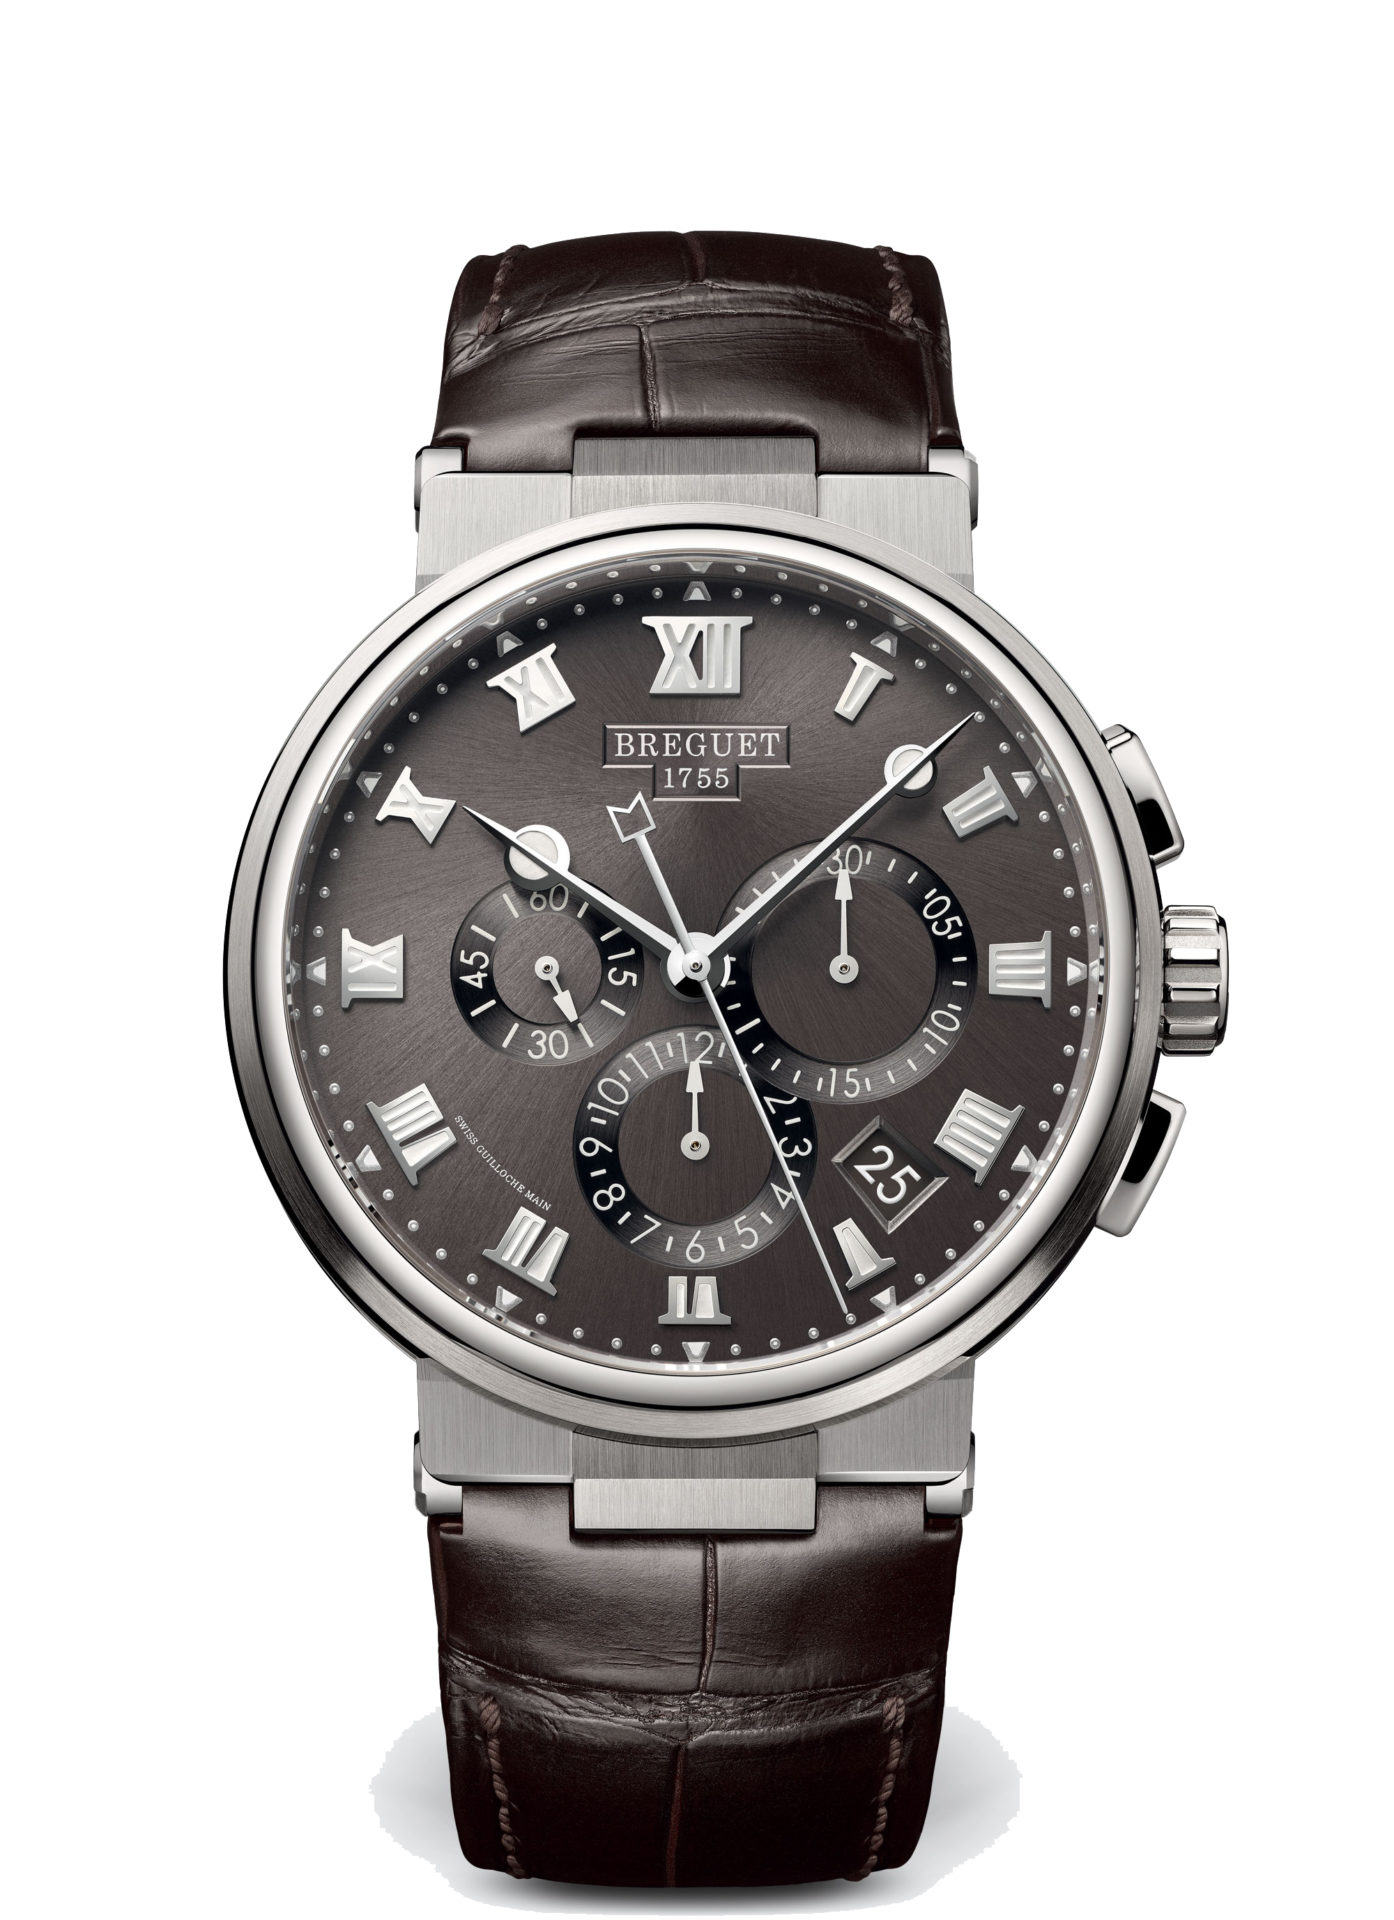 Breguet-La-Marine-Marine-Chronographe-5527-Hall-of-Time-5527TI-G2-9WV-1